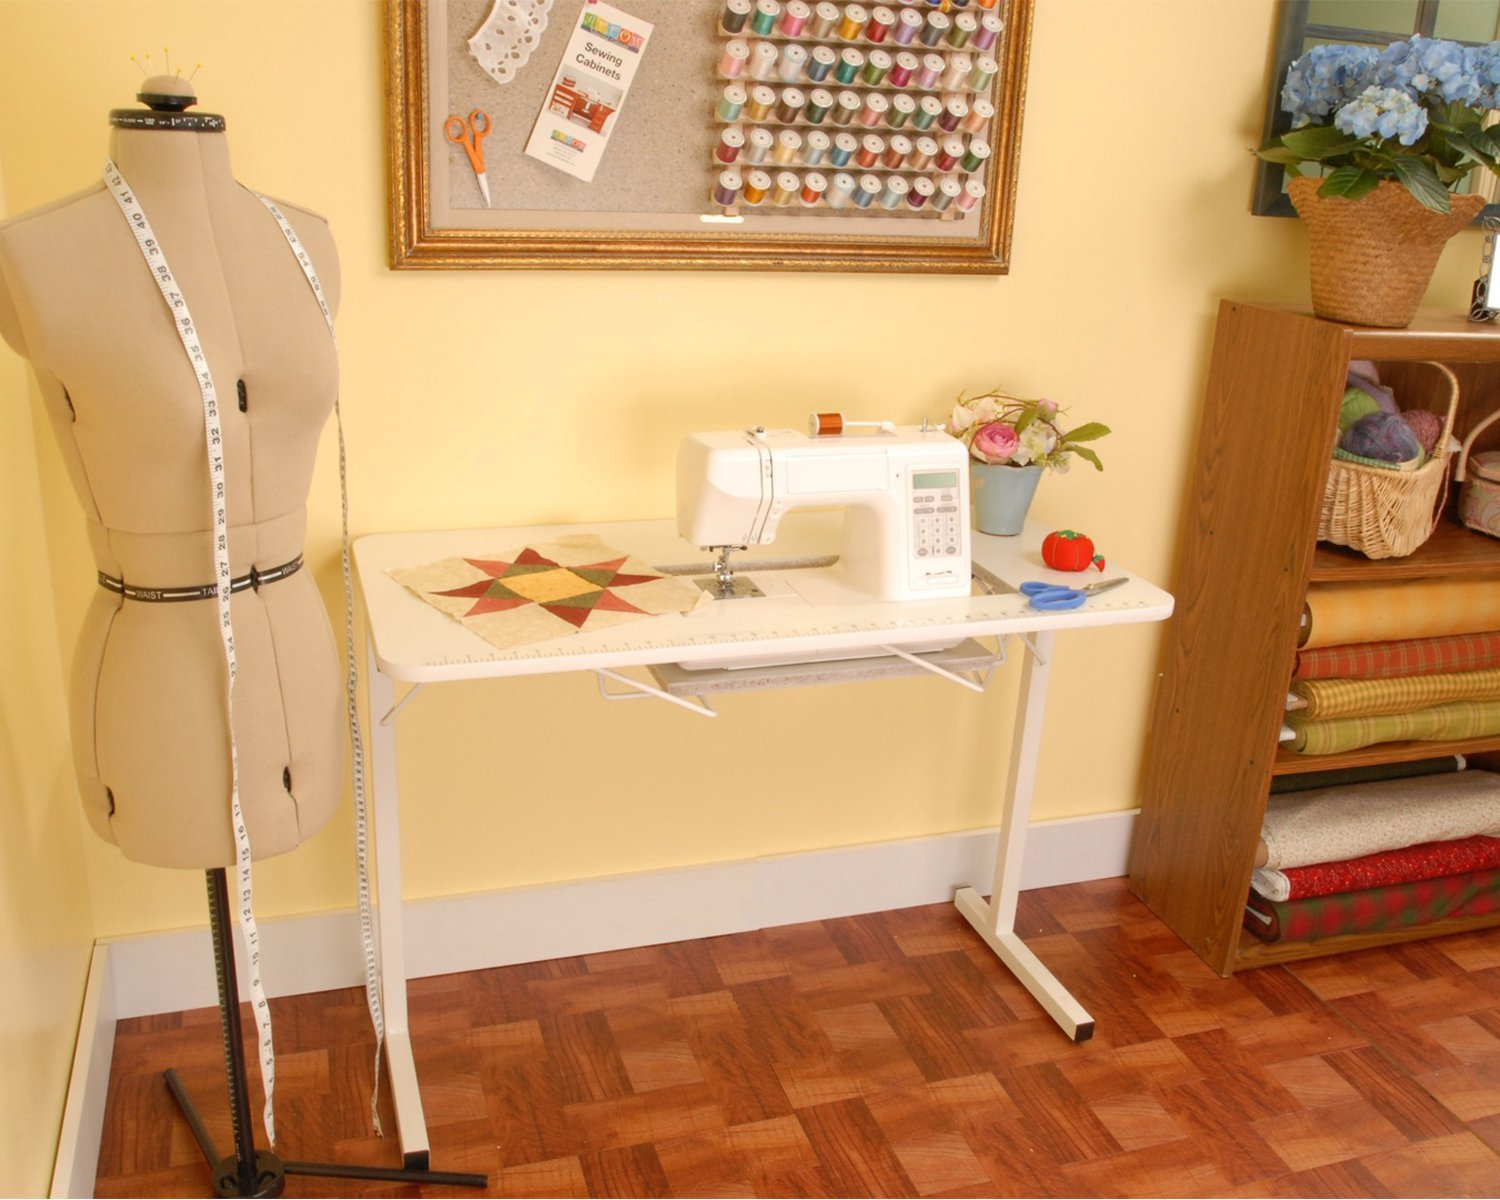 THE ARROW 601 GIDGET SEWING TABLE